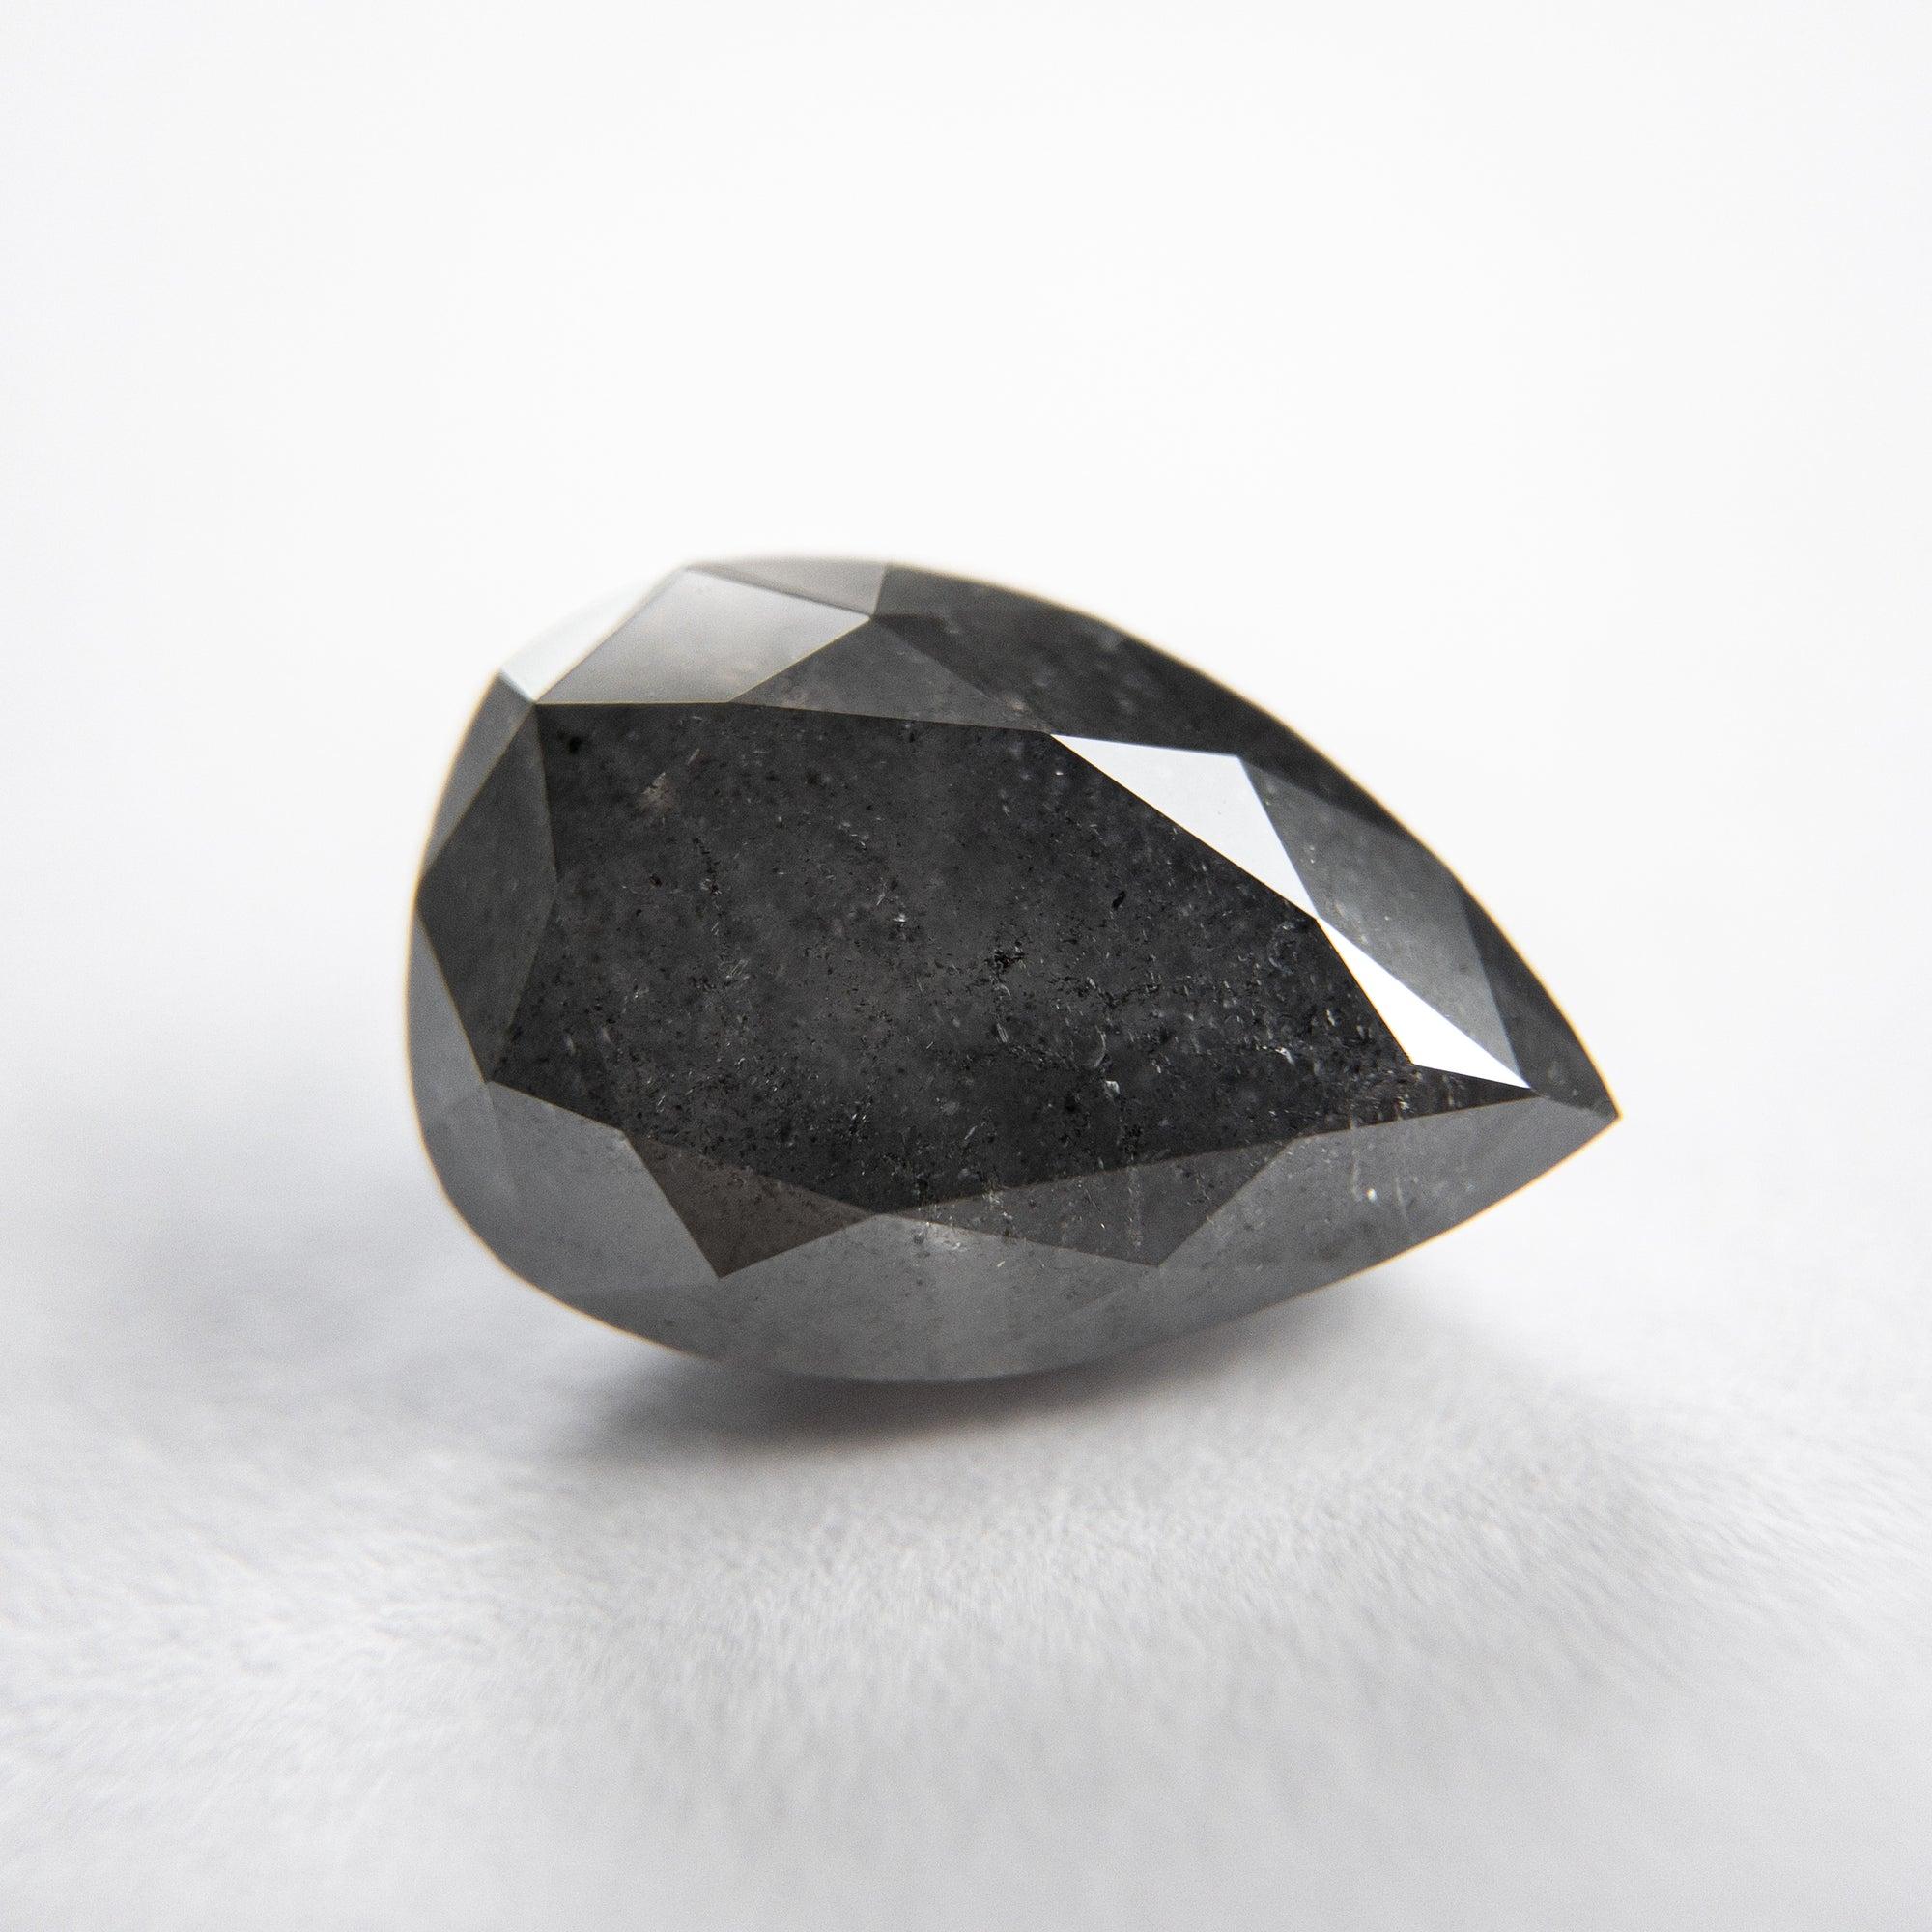 3.73ct 11.49x7.94x5.98mm Pear Brilliant 18223-02